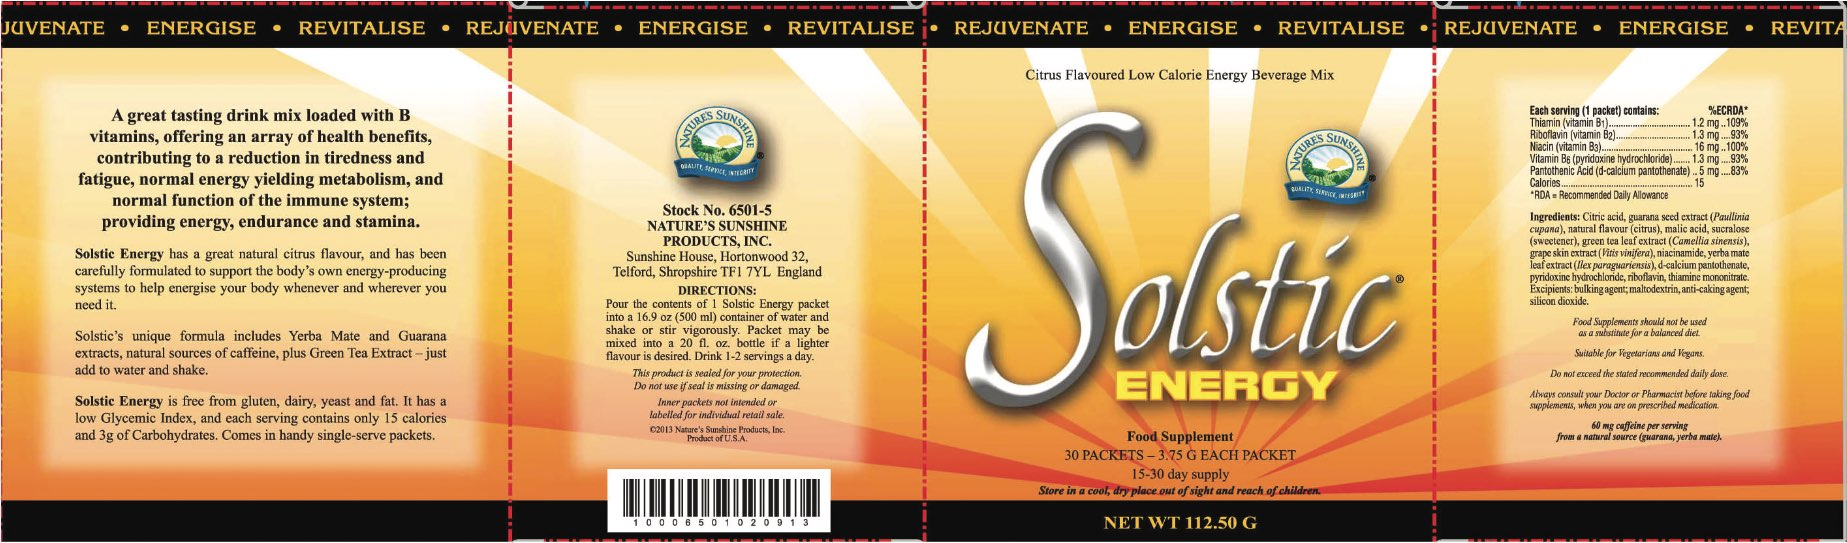 Nature's Sunshine - Solstic Energy (30 Sachets) - Label